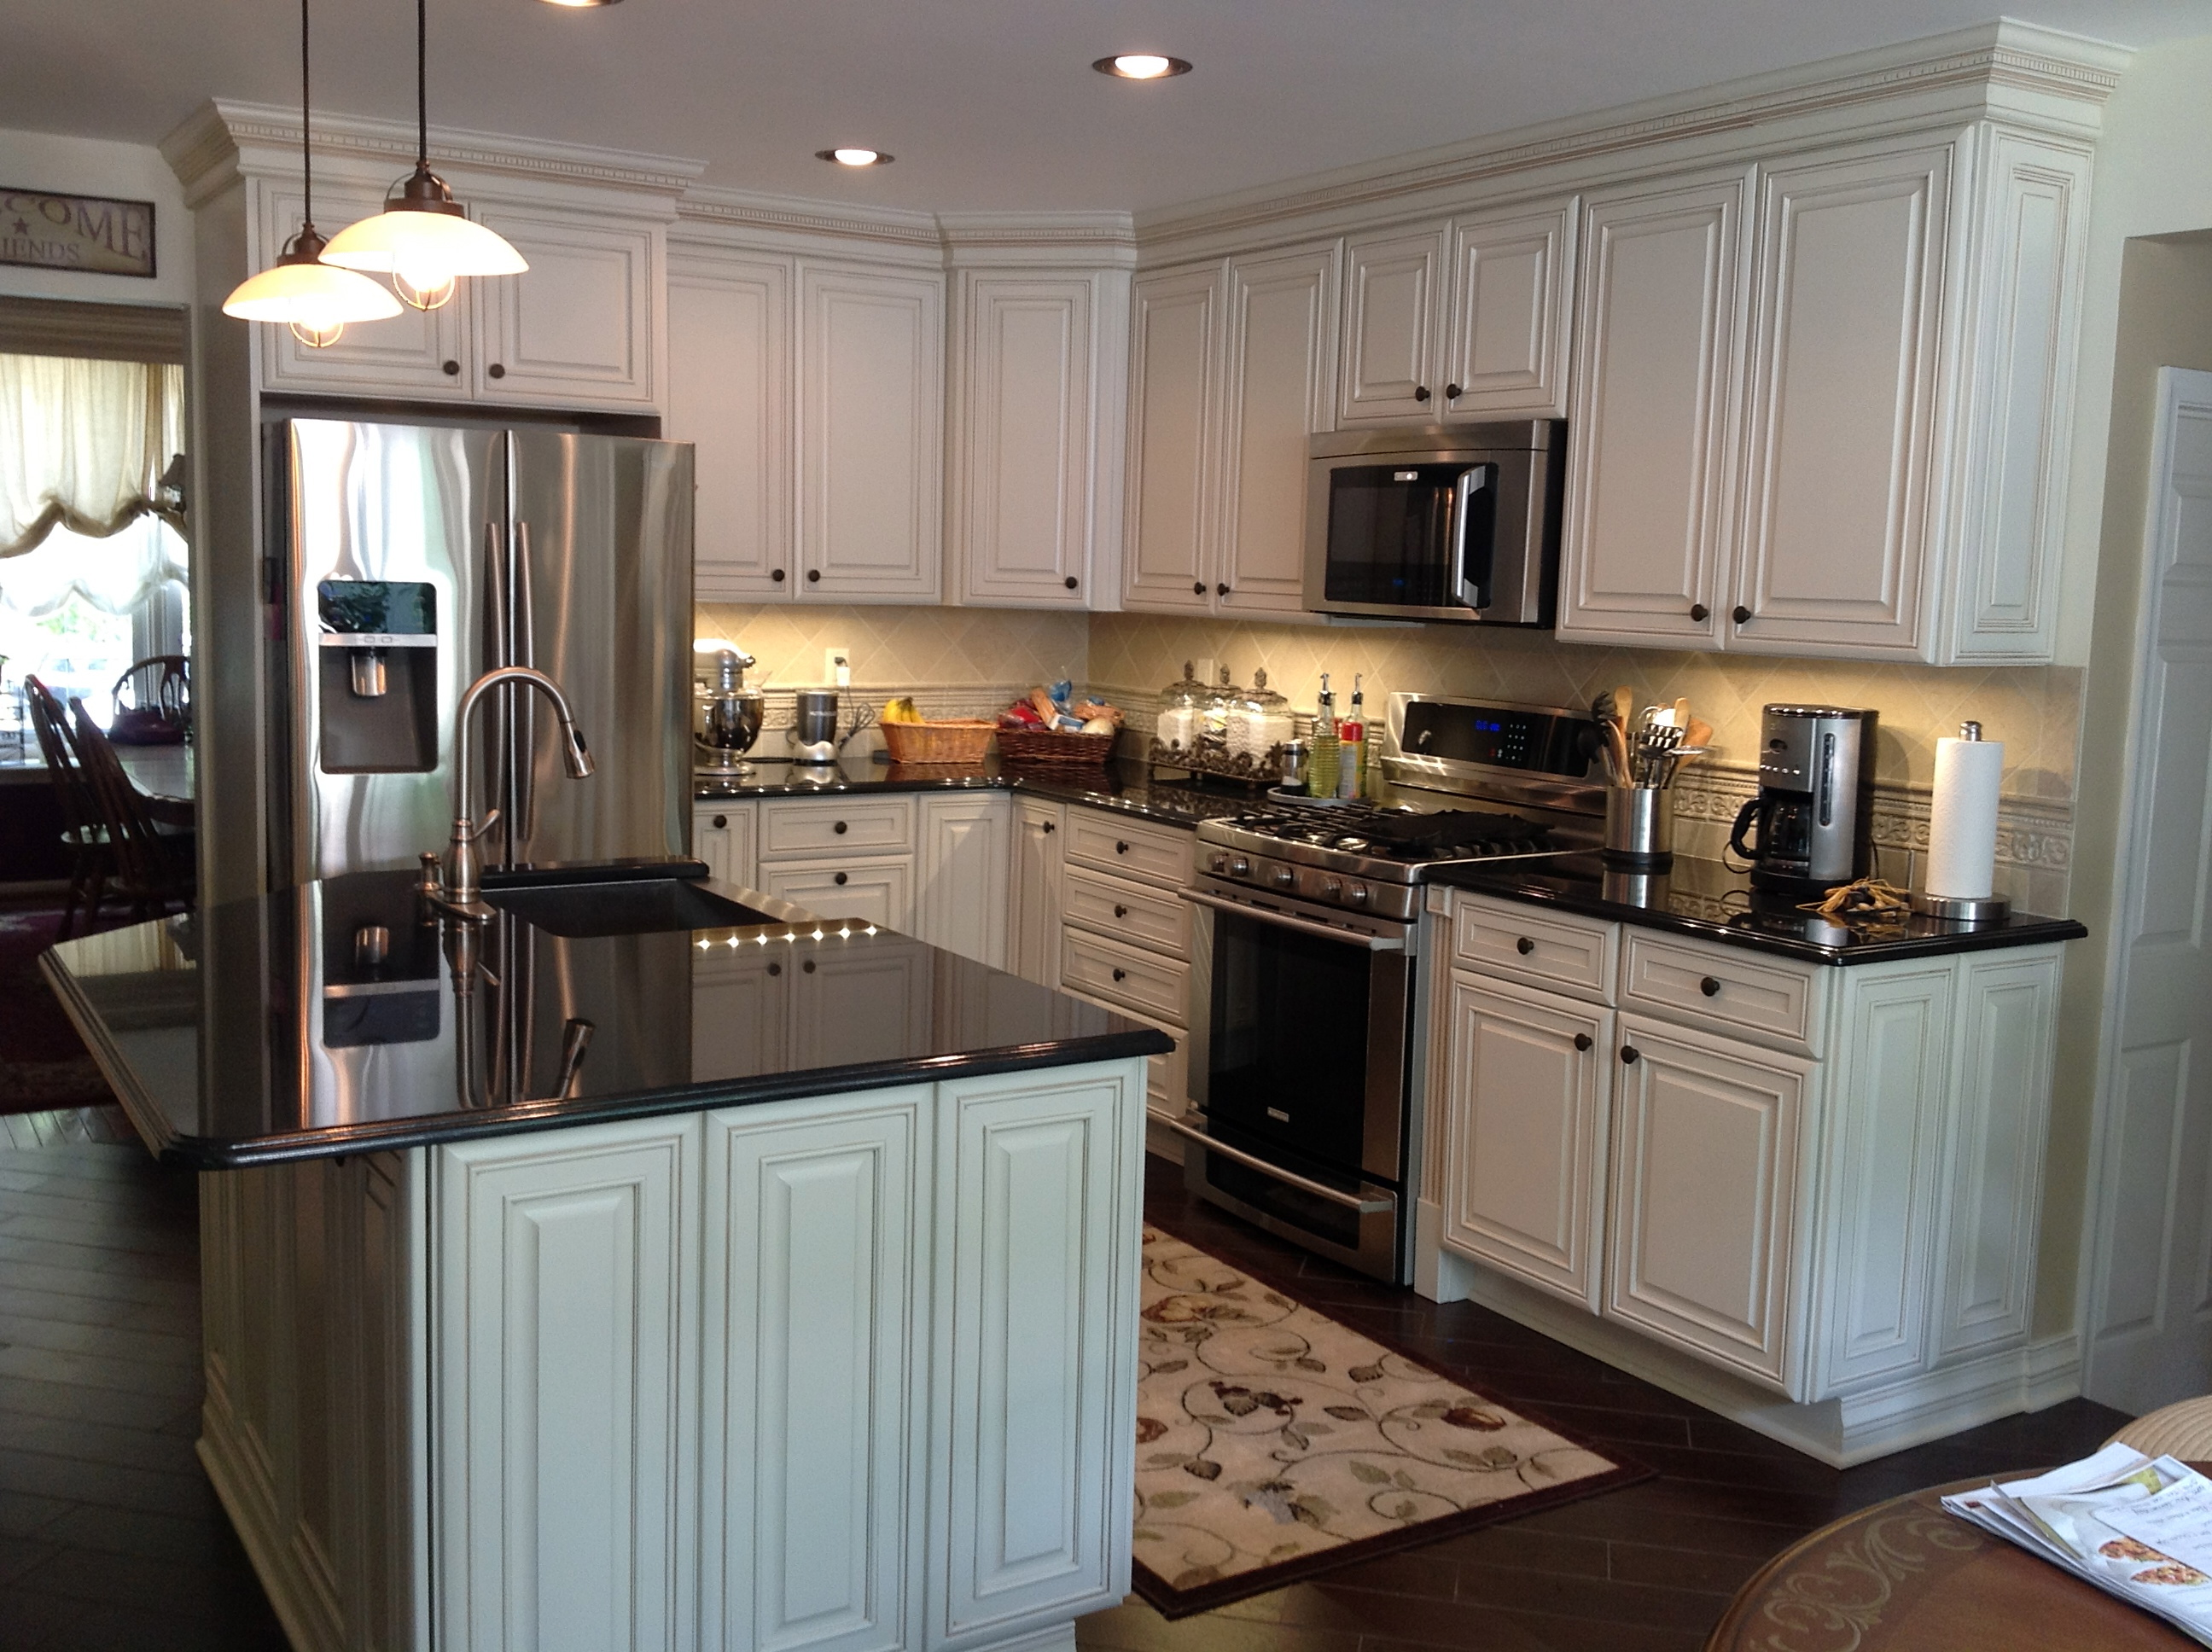 south jersey kitchen remodeling modern decor renovation in sewell located a